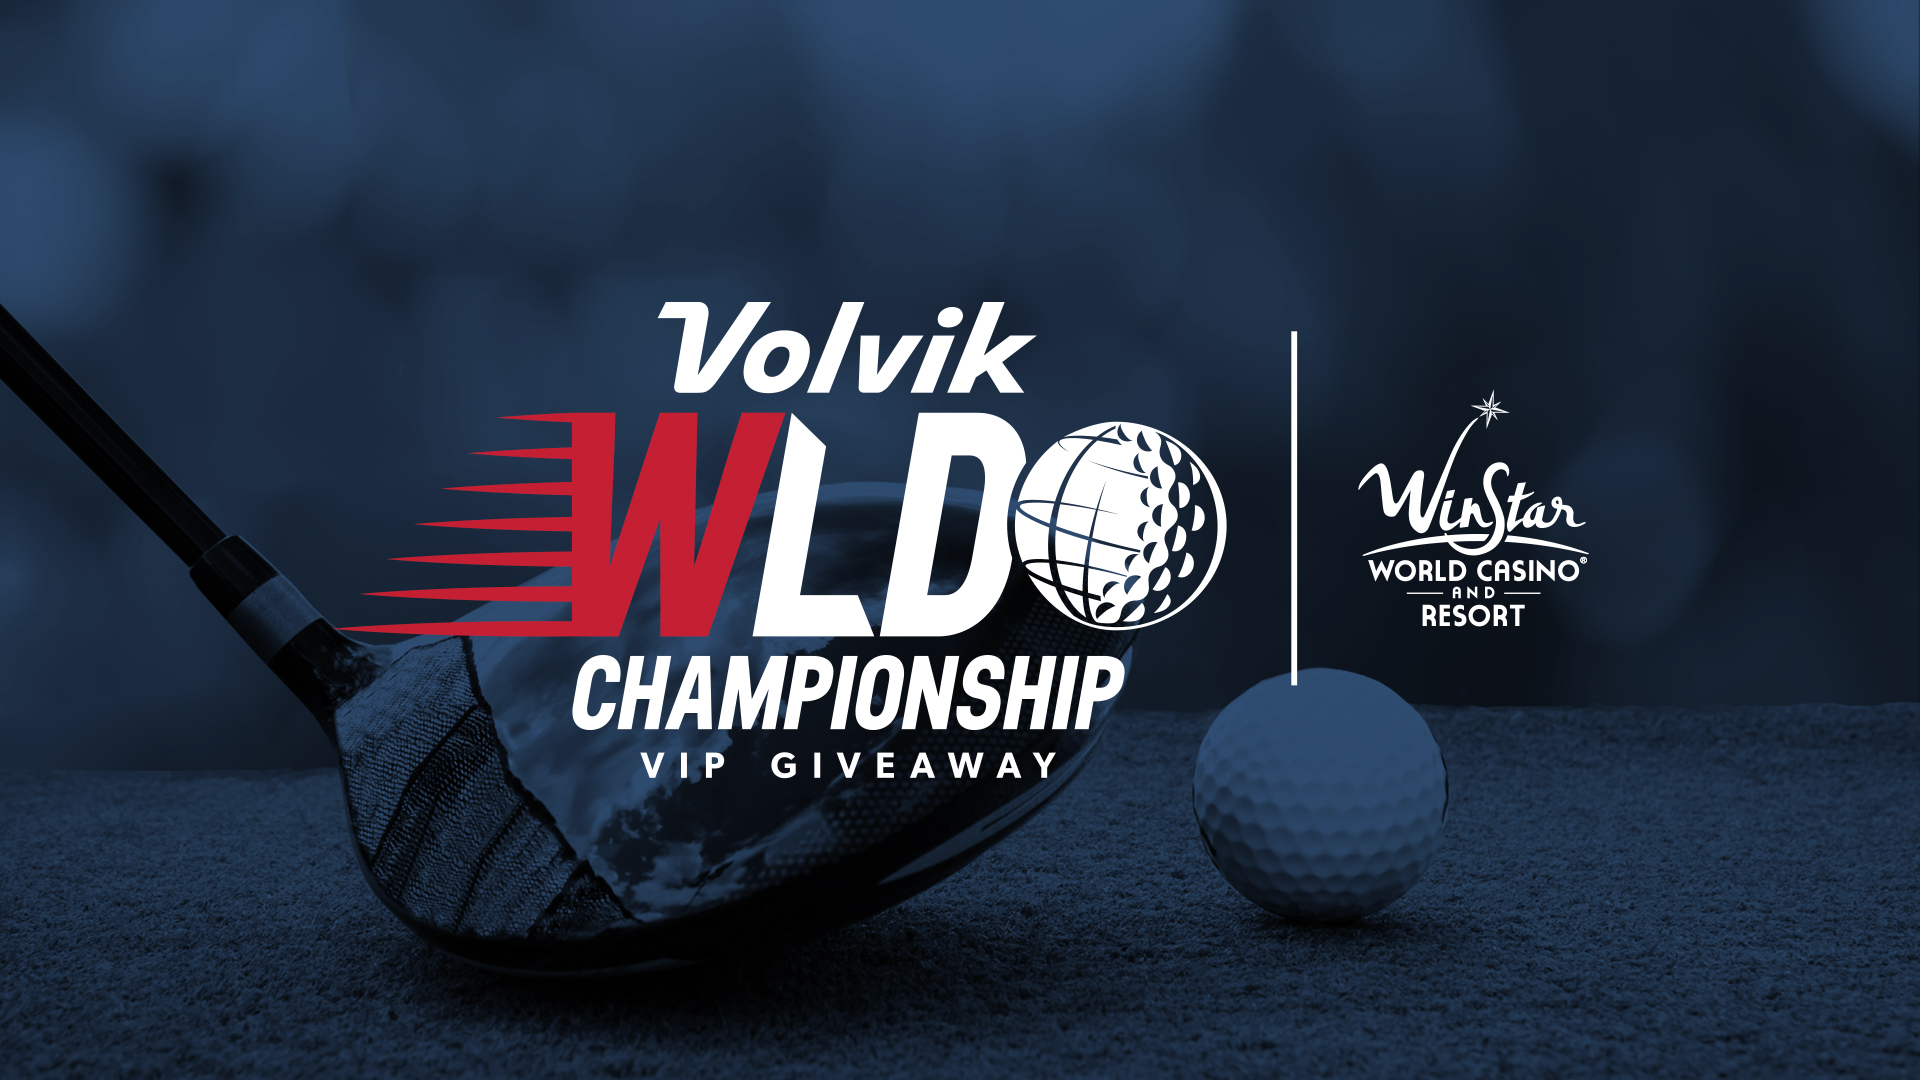 VIP Status at the Volvik World Long Drive Championship